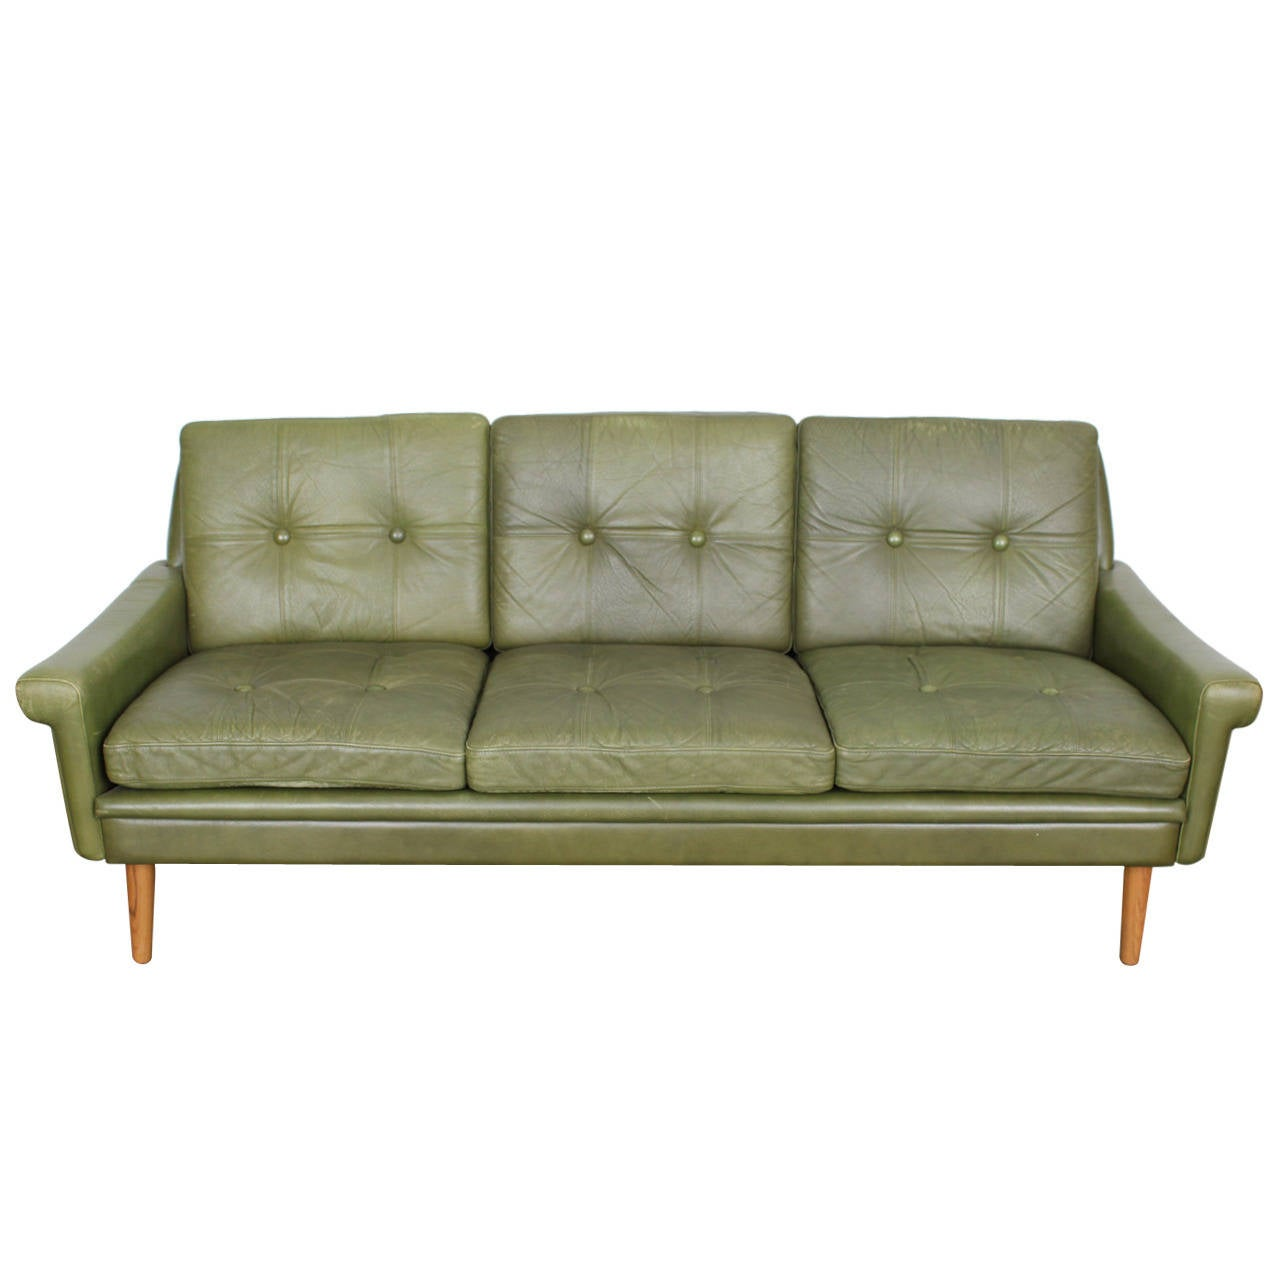 Mid century modern green leather sofa by skippers mobler for Modern loveseat